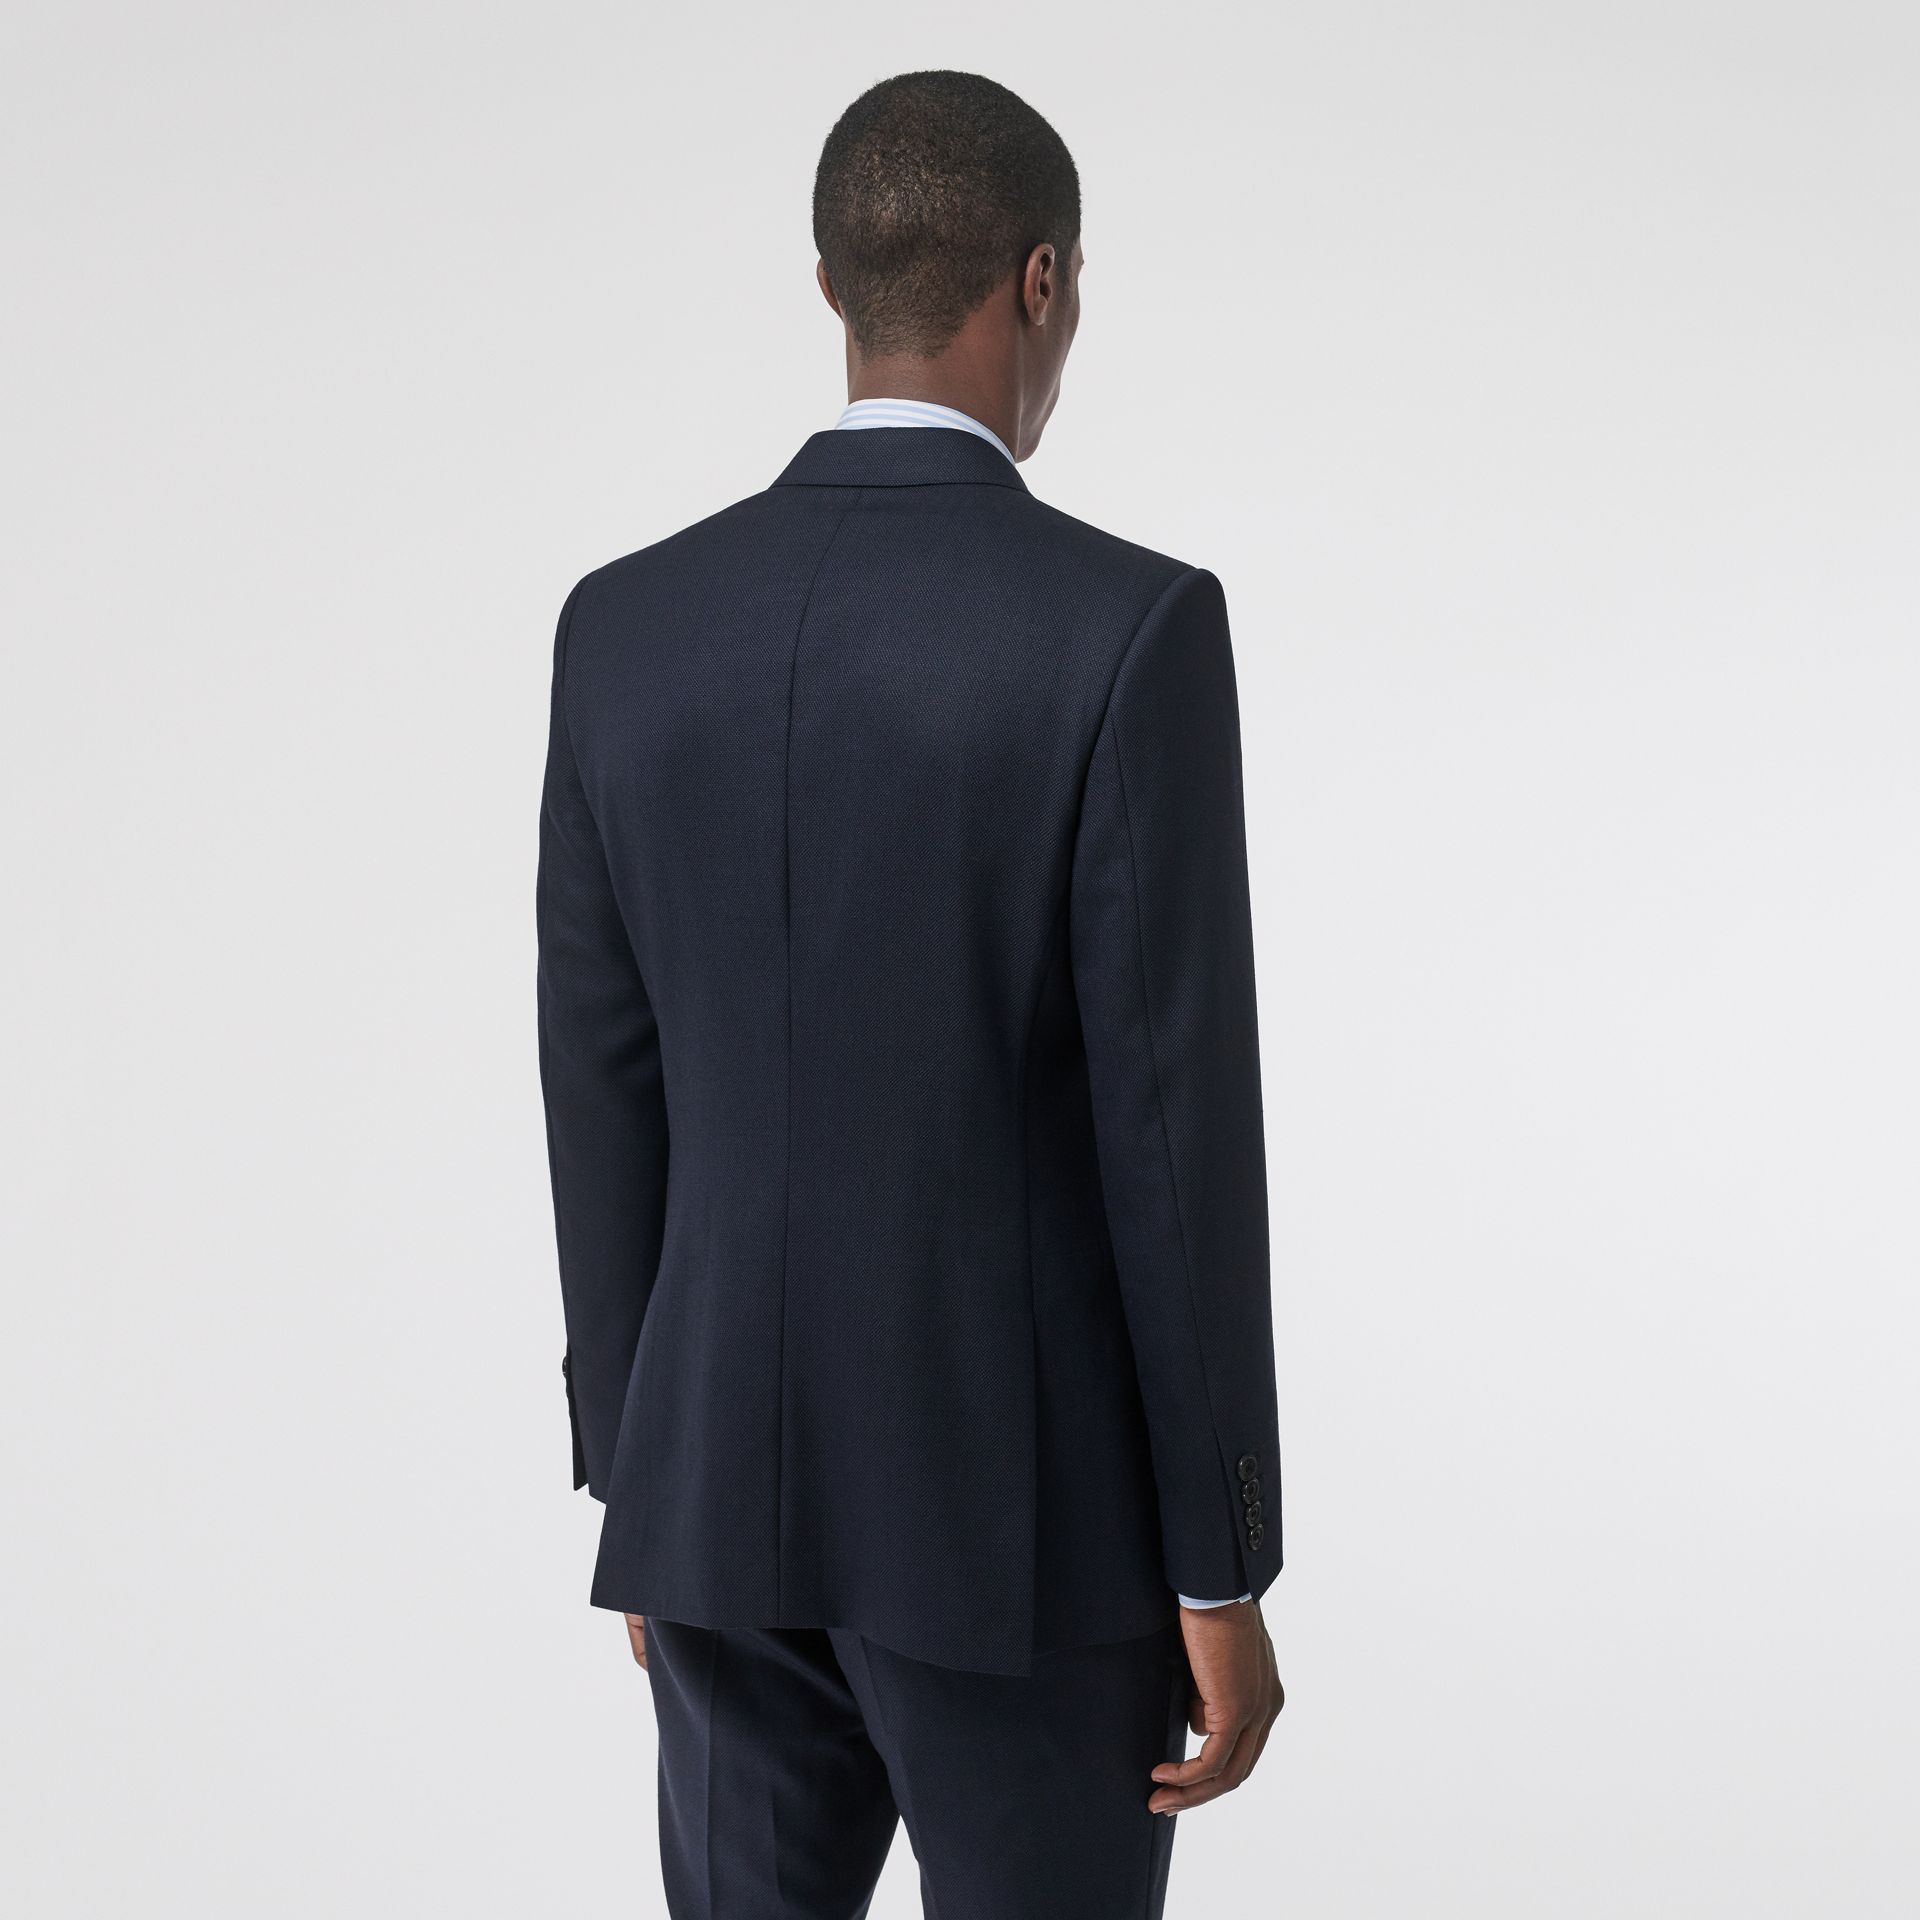 English Fit Birdseye Wool Cashmere Suit in Navy Blue | Burberry Singapore - gallery image 2